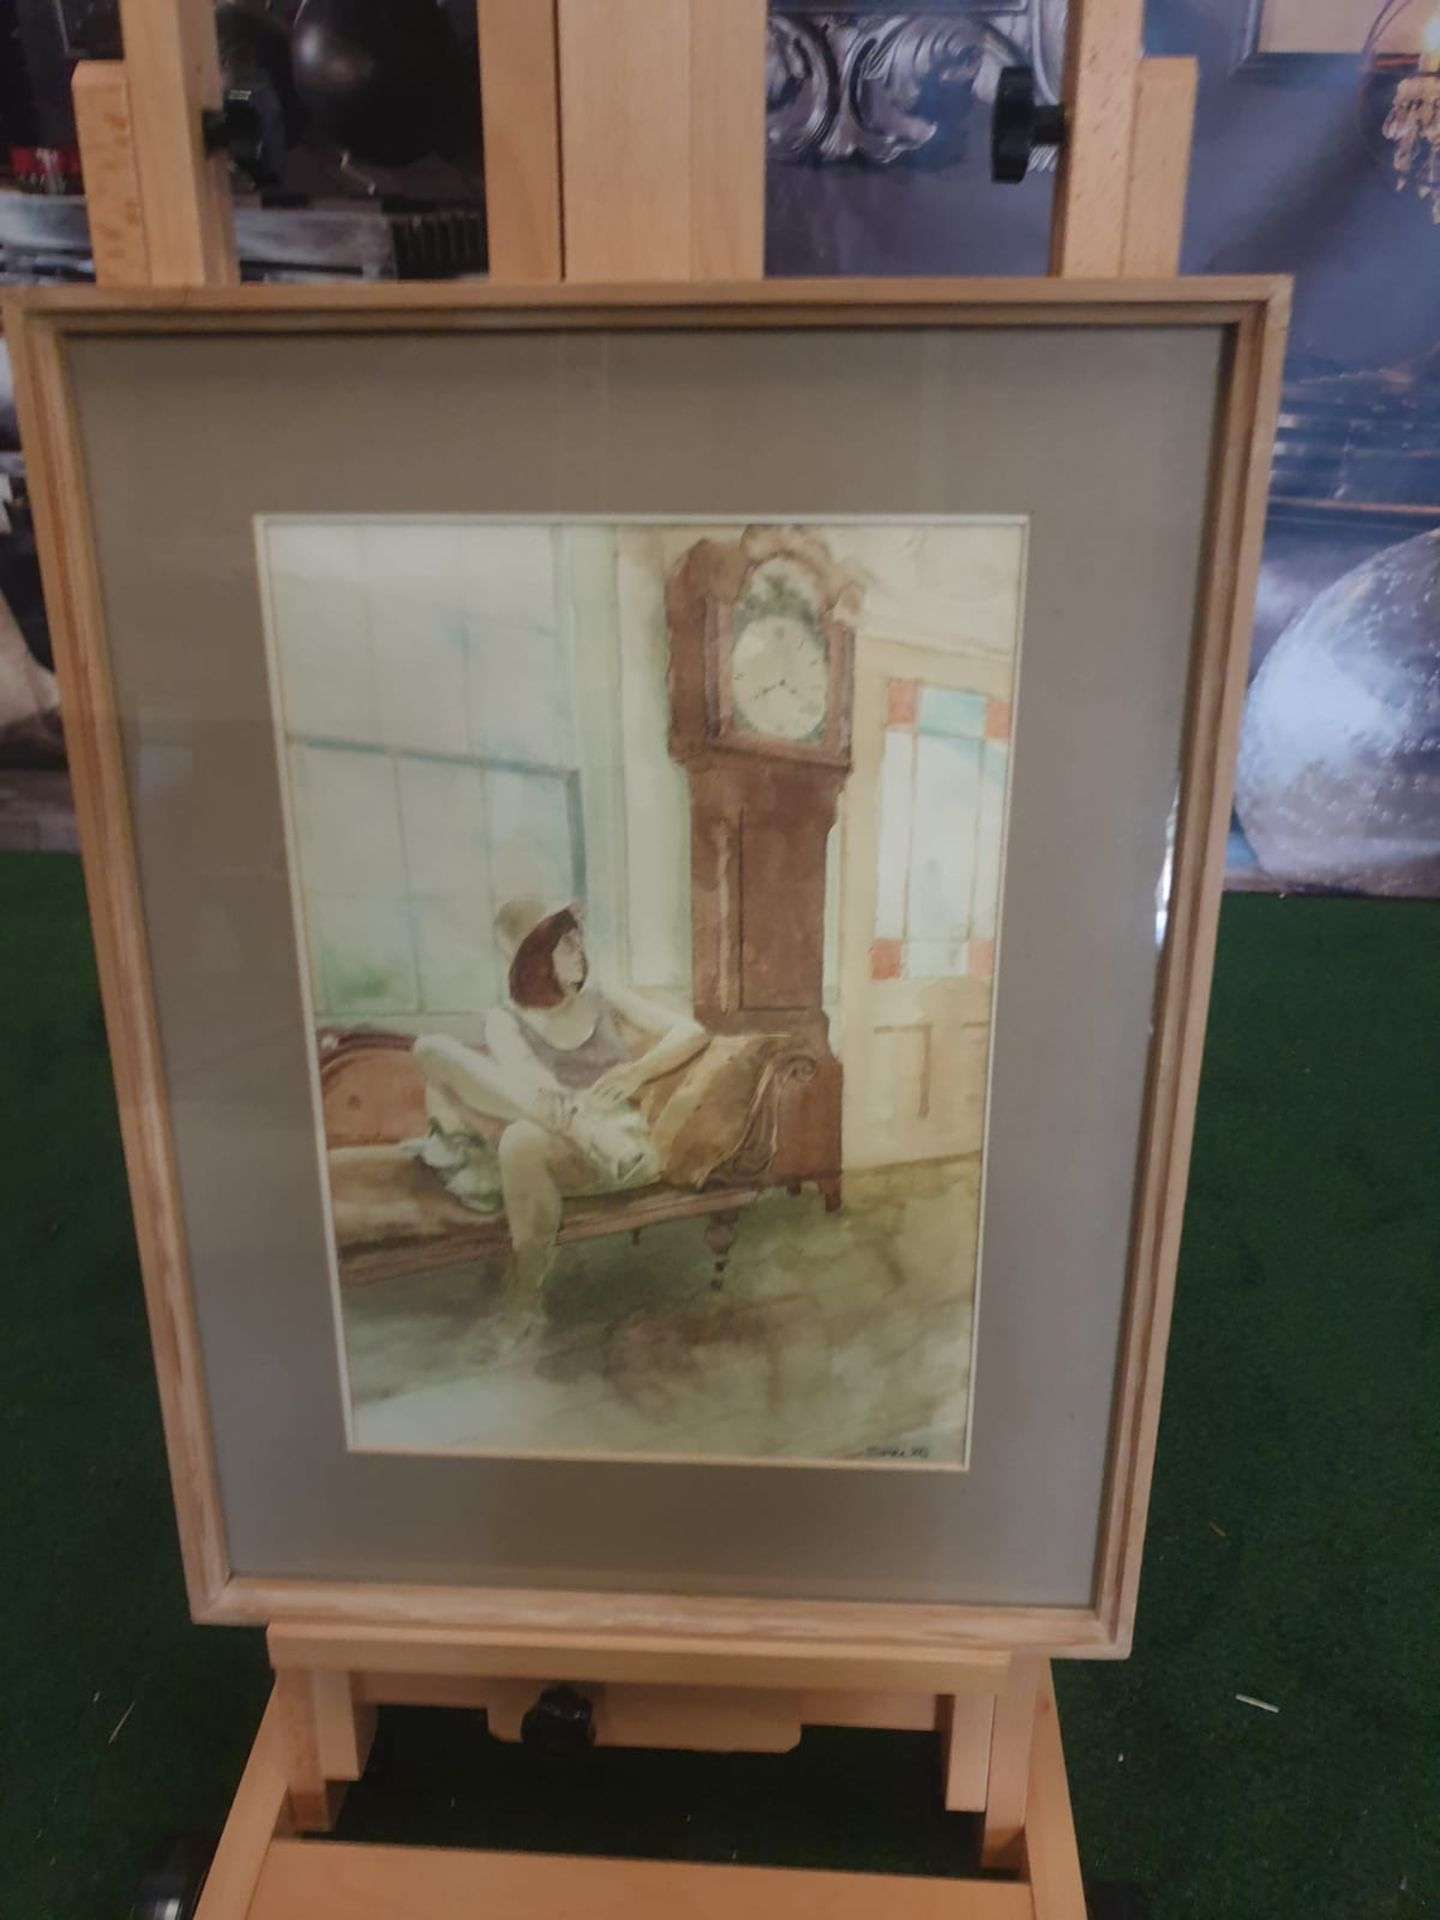 Framed watercolour Woman on chair by Grandfather clock singed and dated by Michael Smee '80 - Image 2 of 5